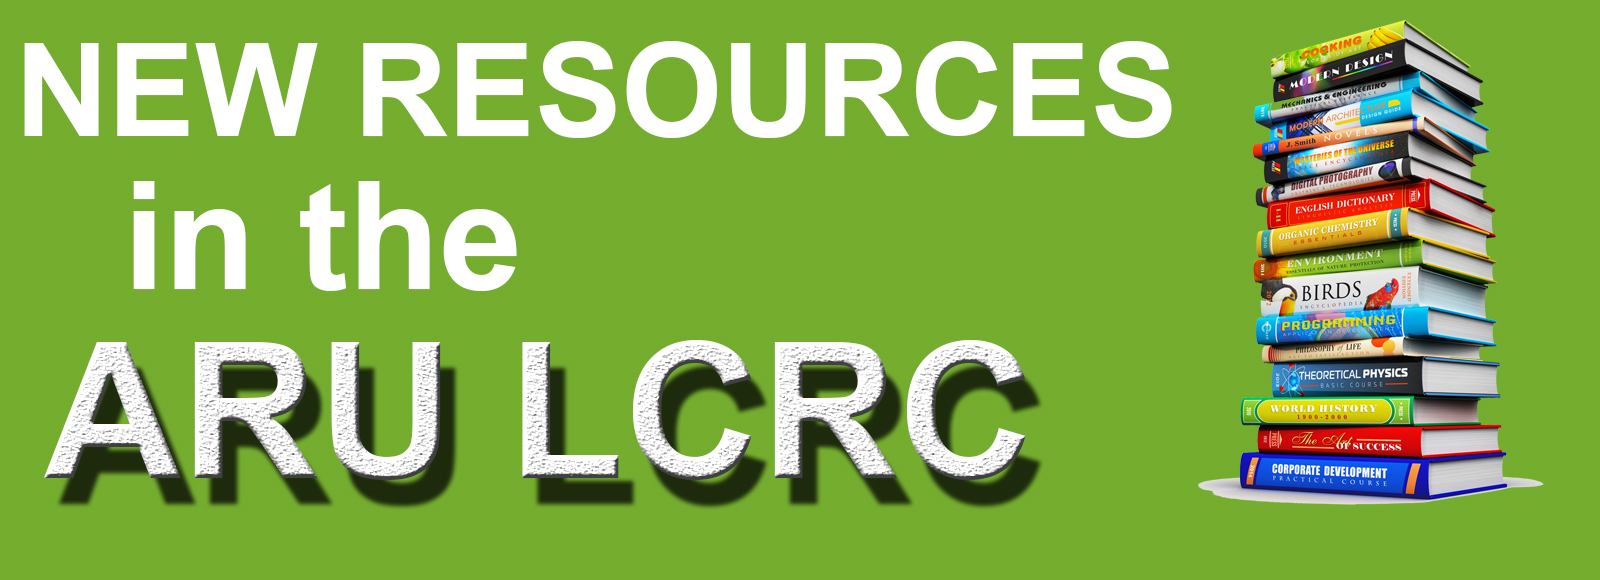 New Resources in the Library